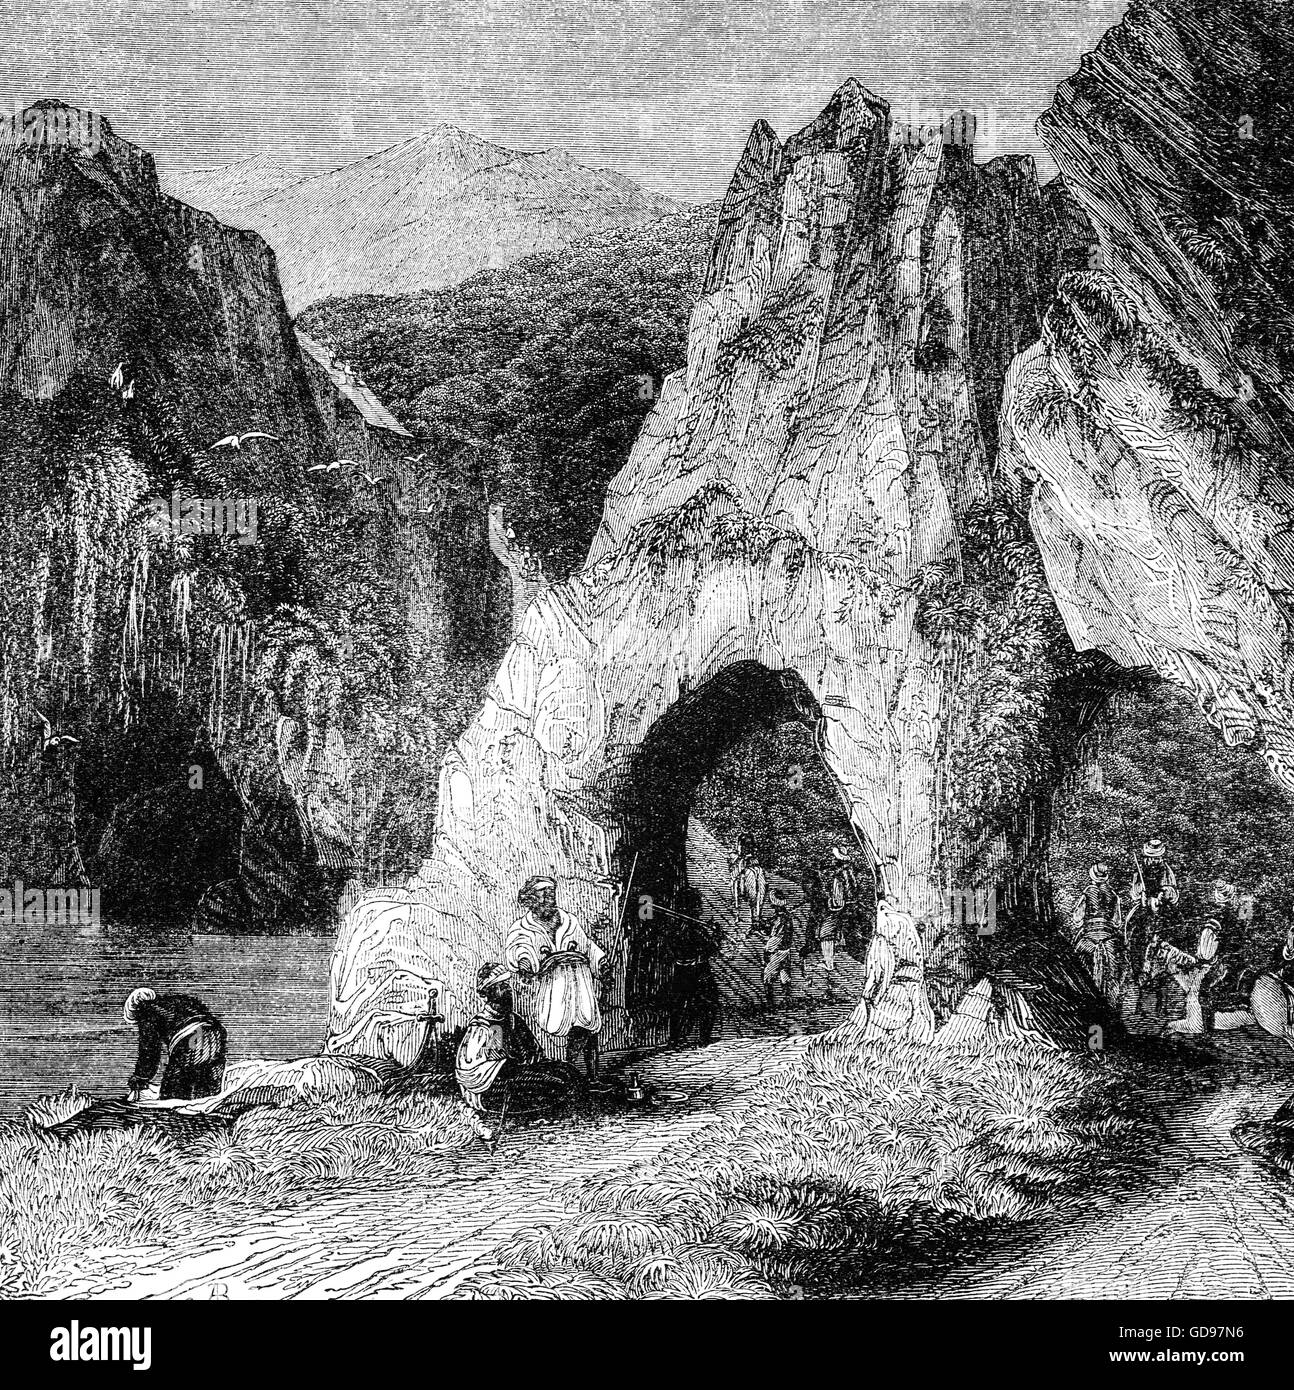 A typical 18th Century view in the Balkan Peninsula, a peninsula and a cultural area in Southeast Europe with many - Stock Image